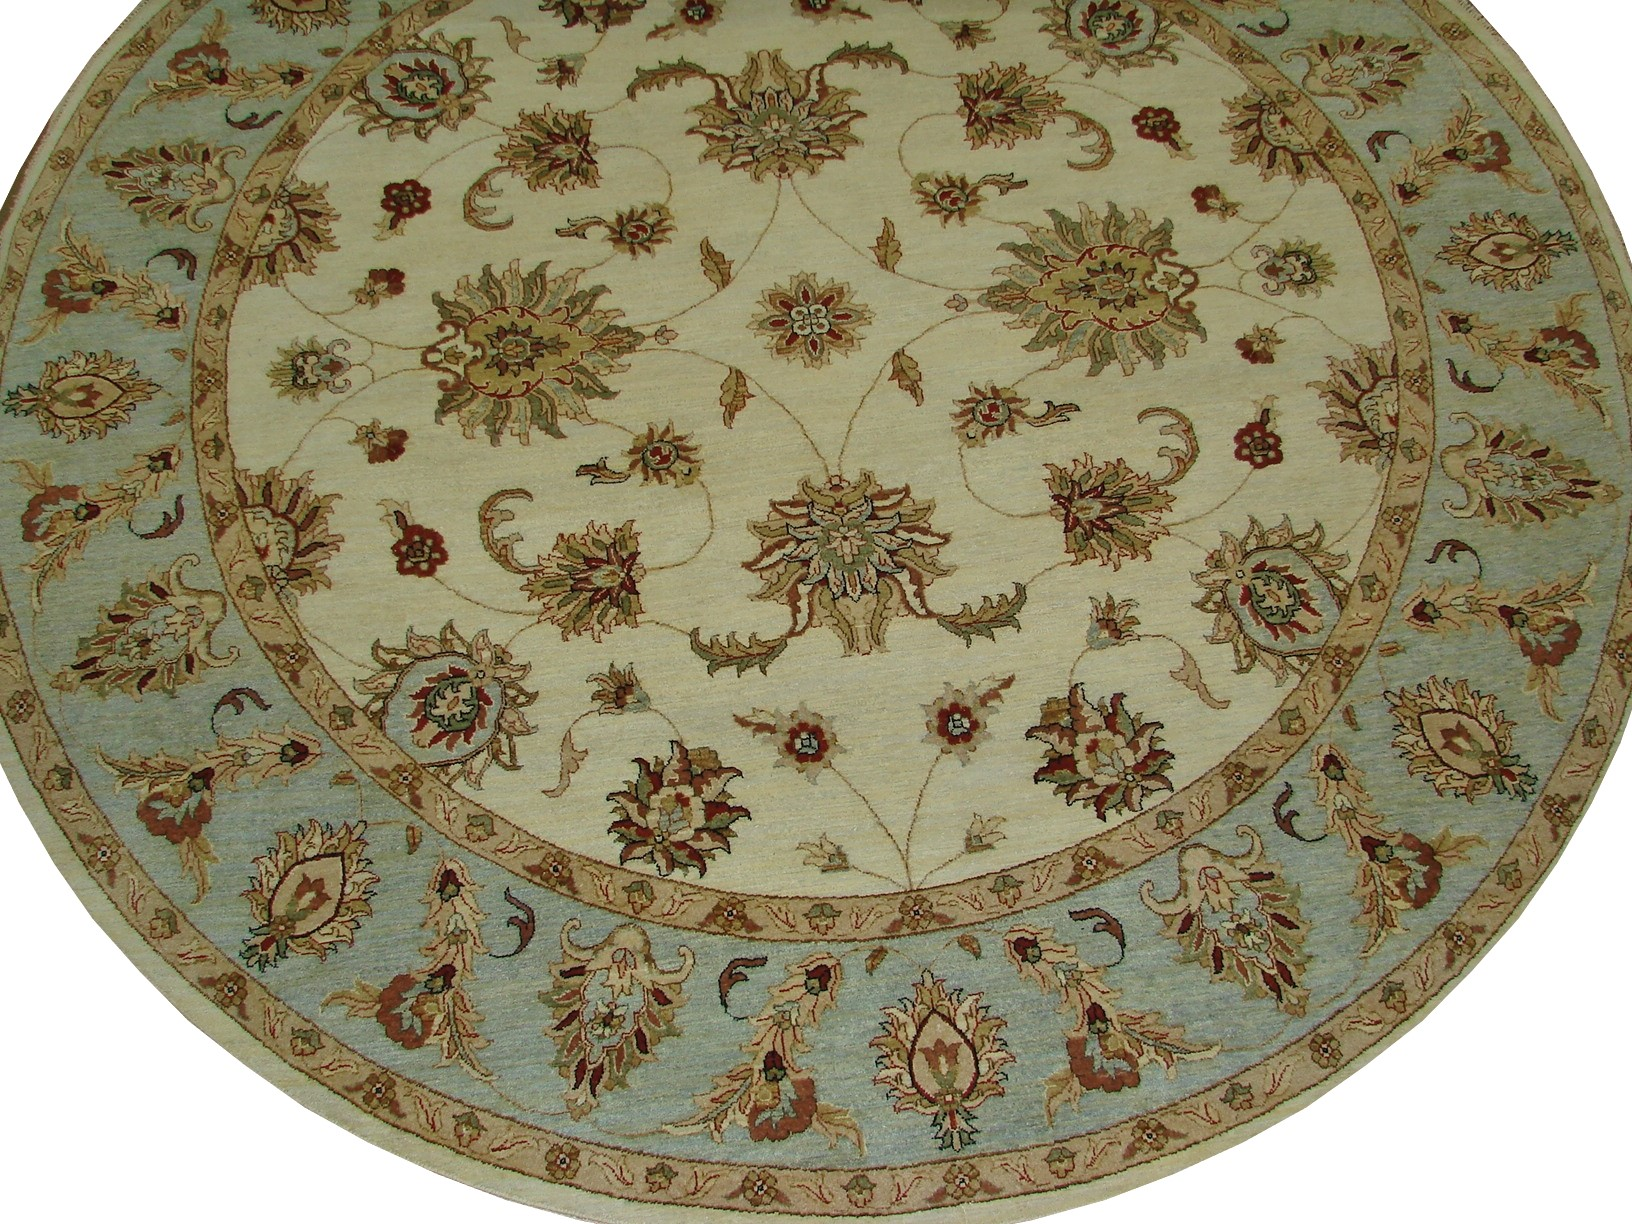 9 ft. & Over Round & Square Traditional Hand Knotted Wool Area Rug - MR16034